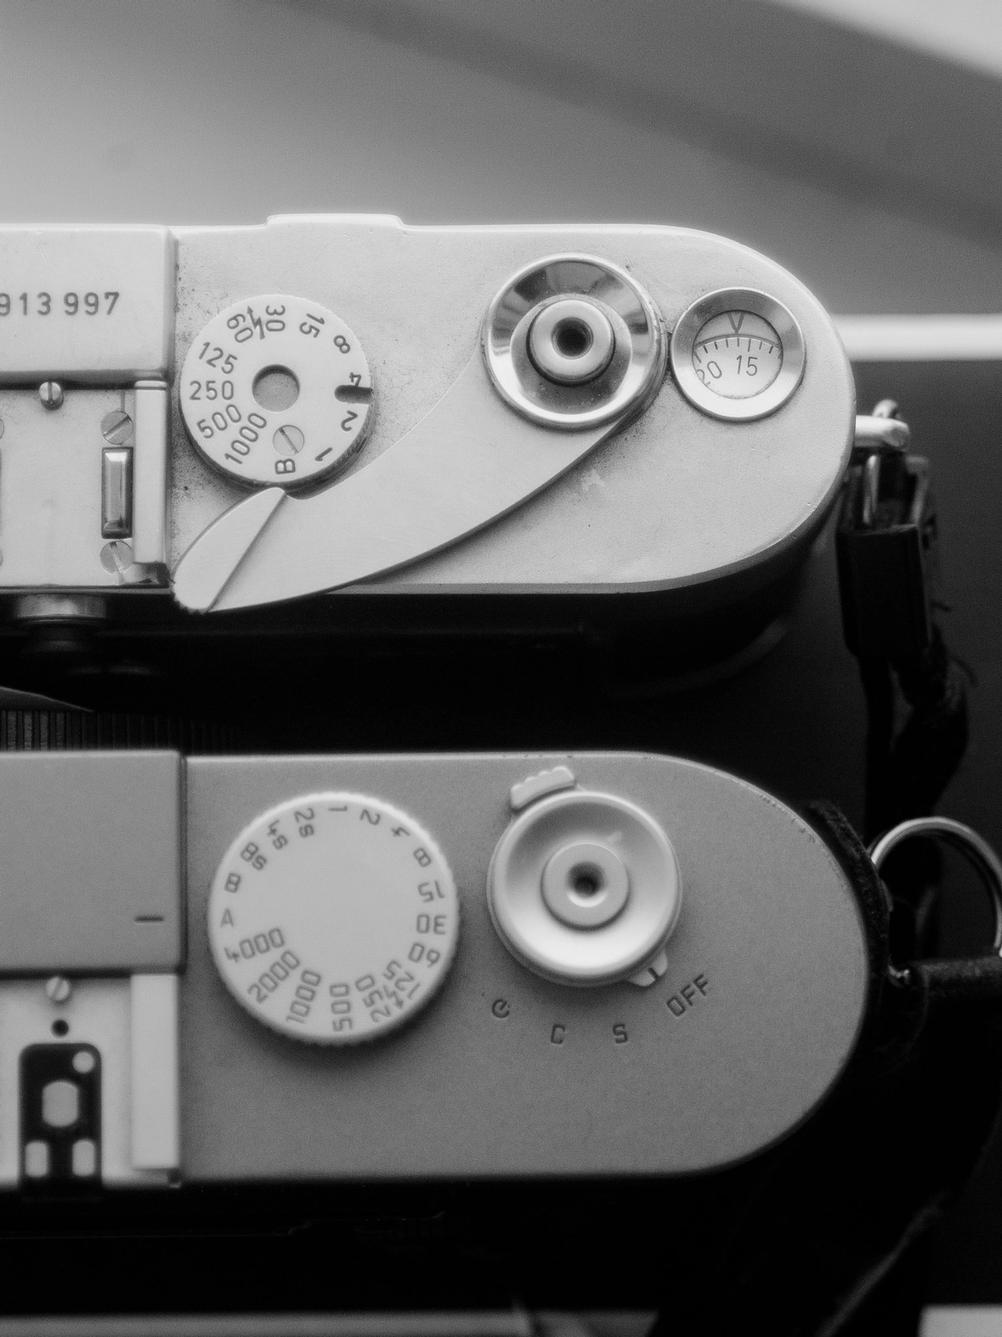 Closeup photo of Leica M3 and M9 top plates.